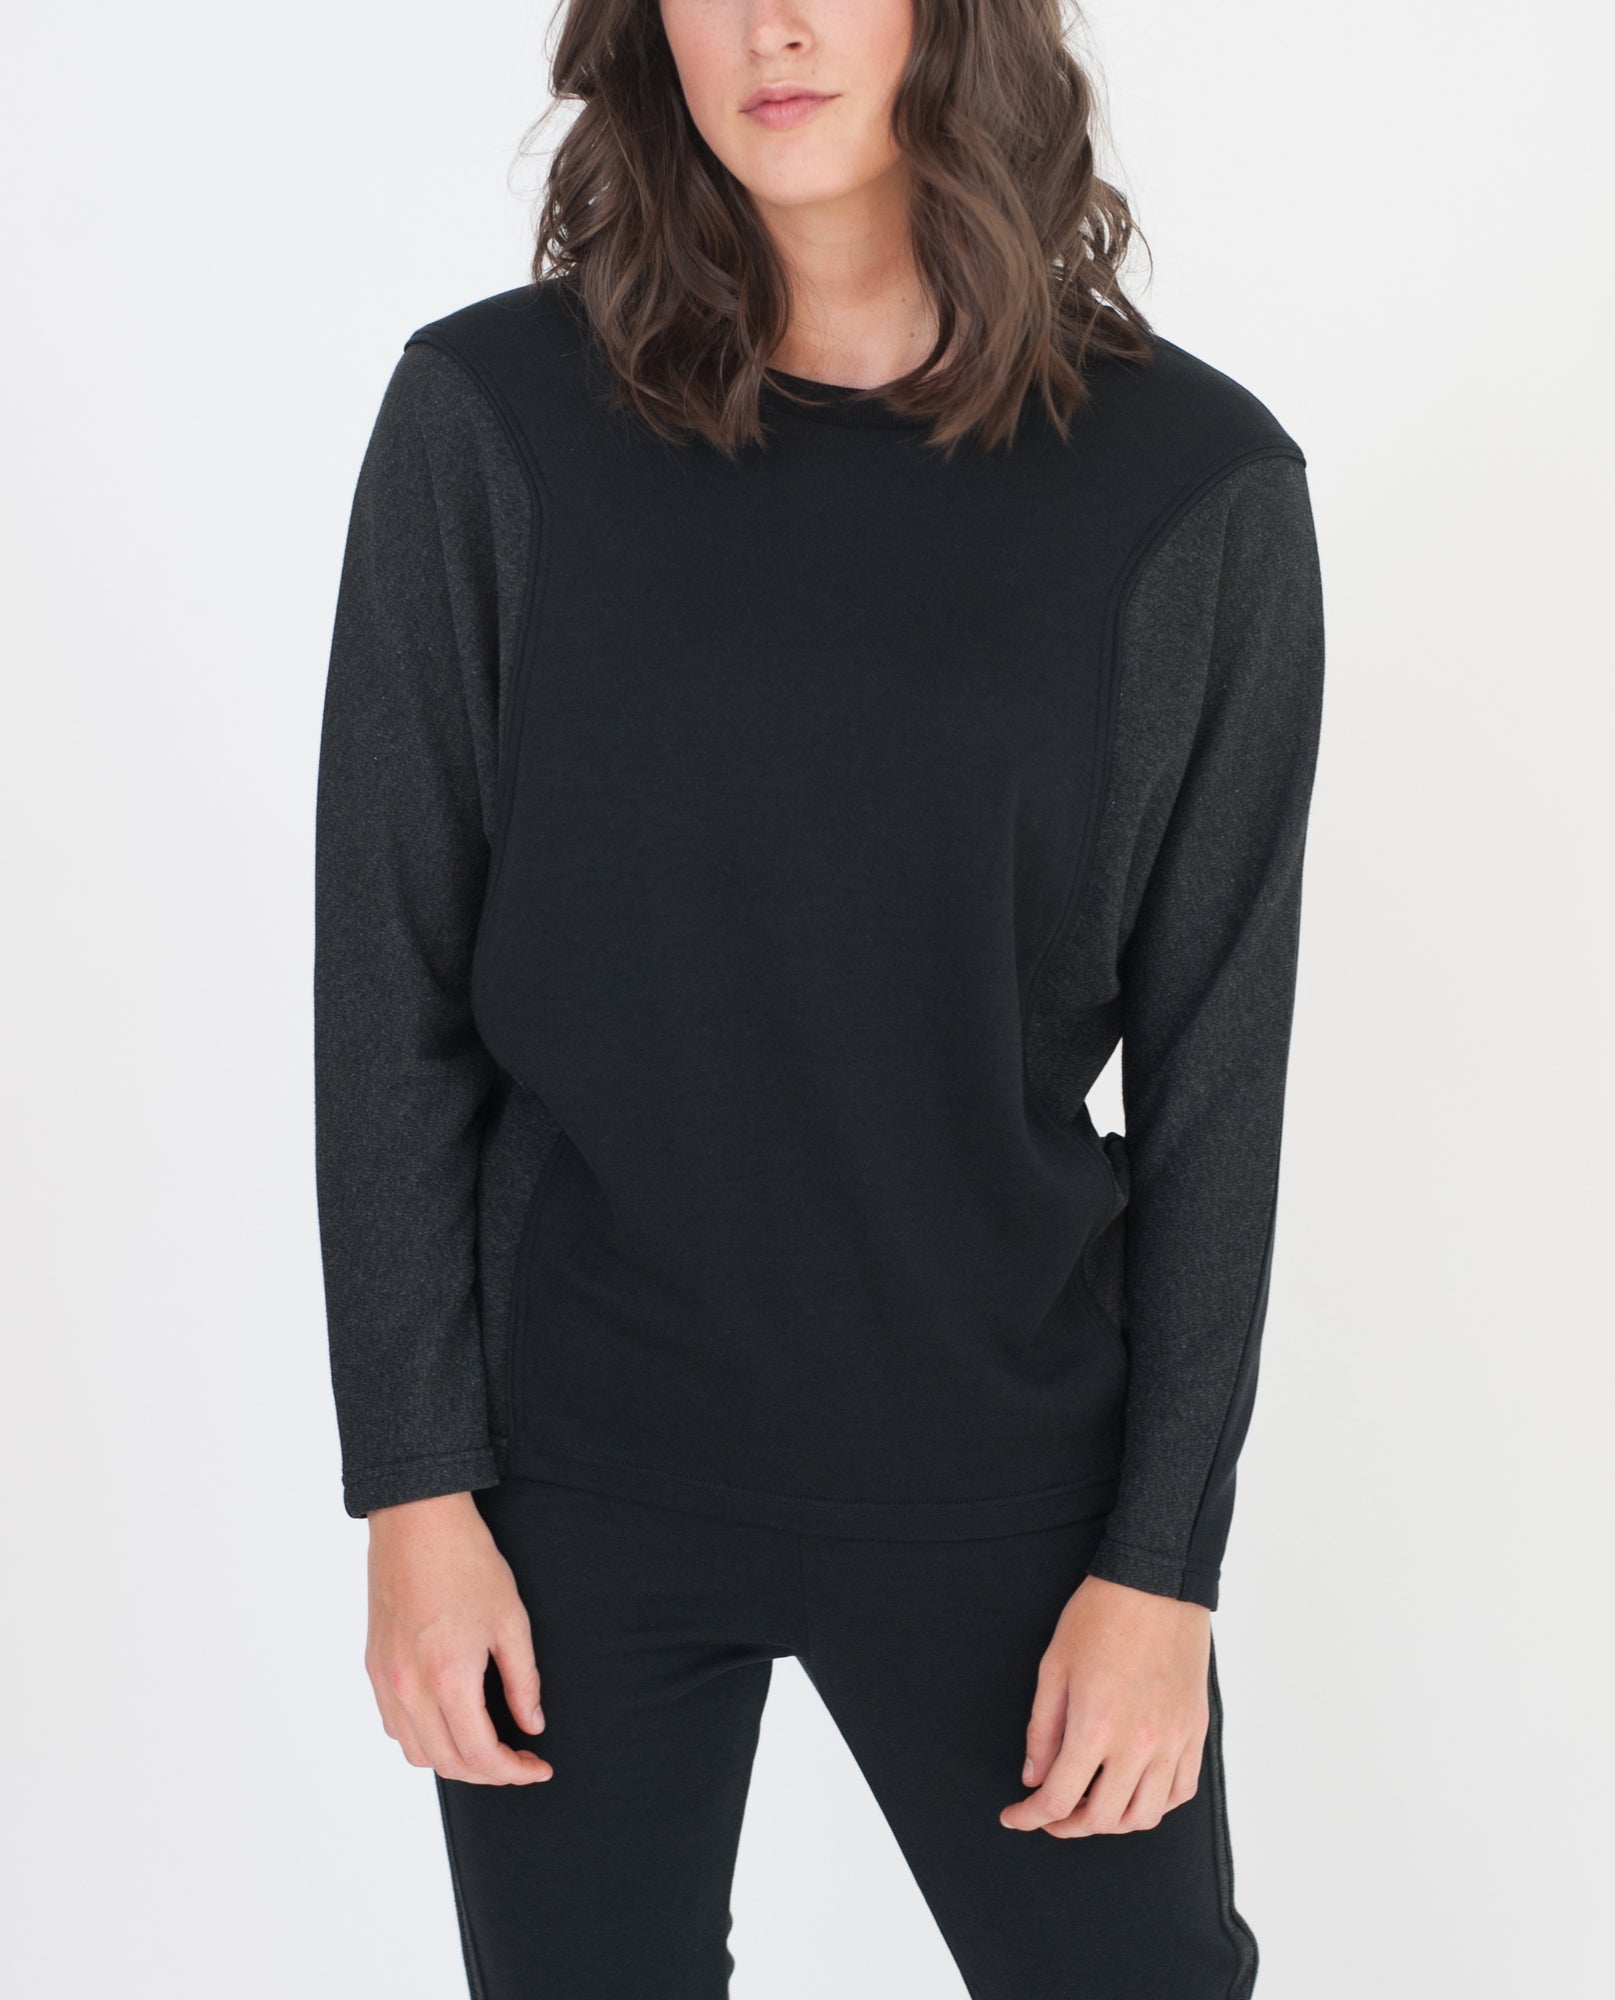 ADLEY Lyocell And Cotton Top from Beaumont Organic